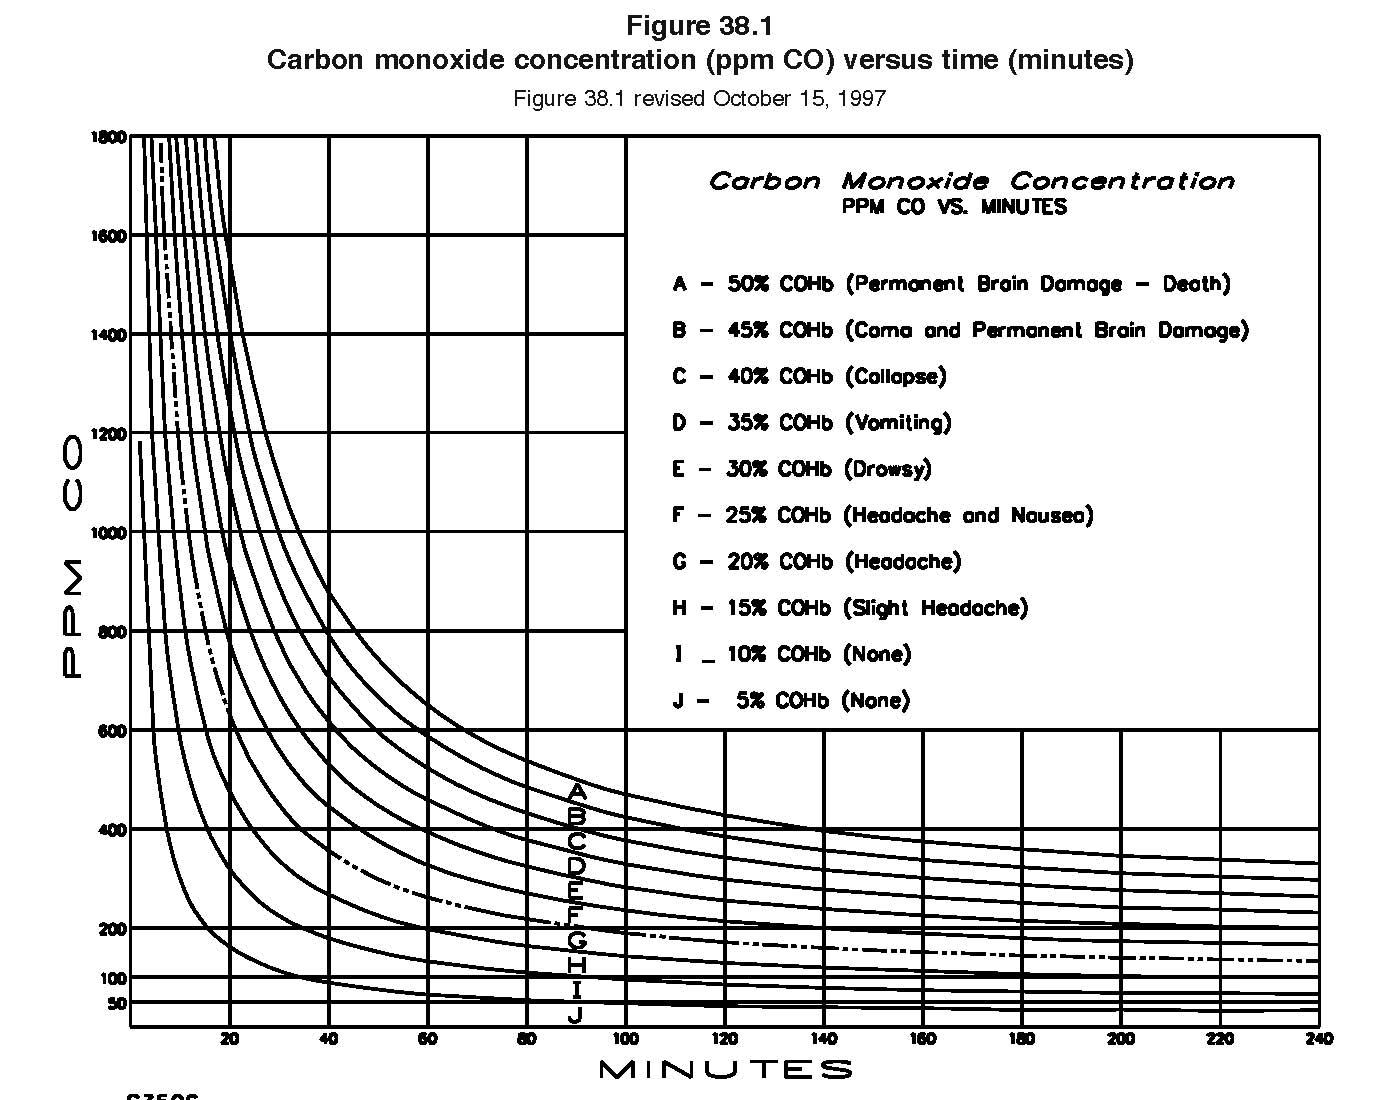 carboxyhemoglobin levels due to carbon monoxide exposure